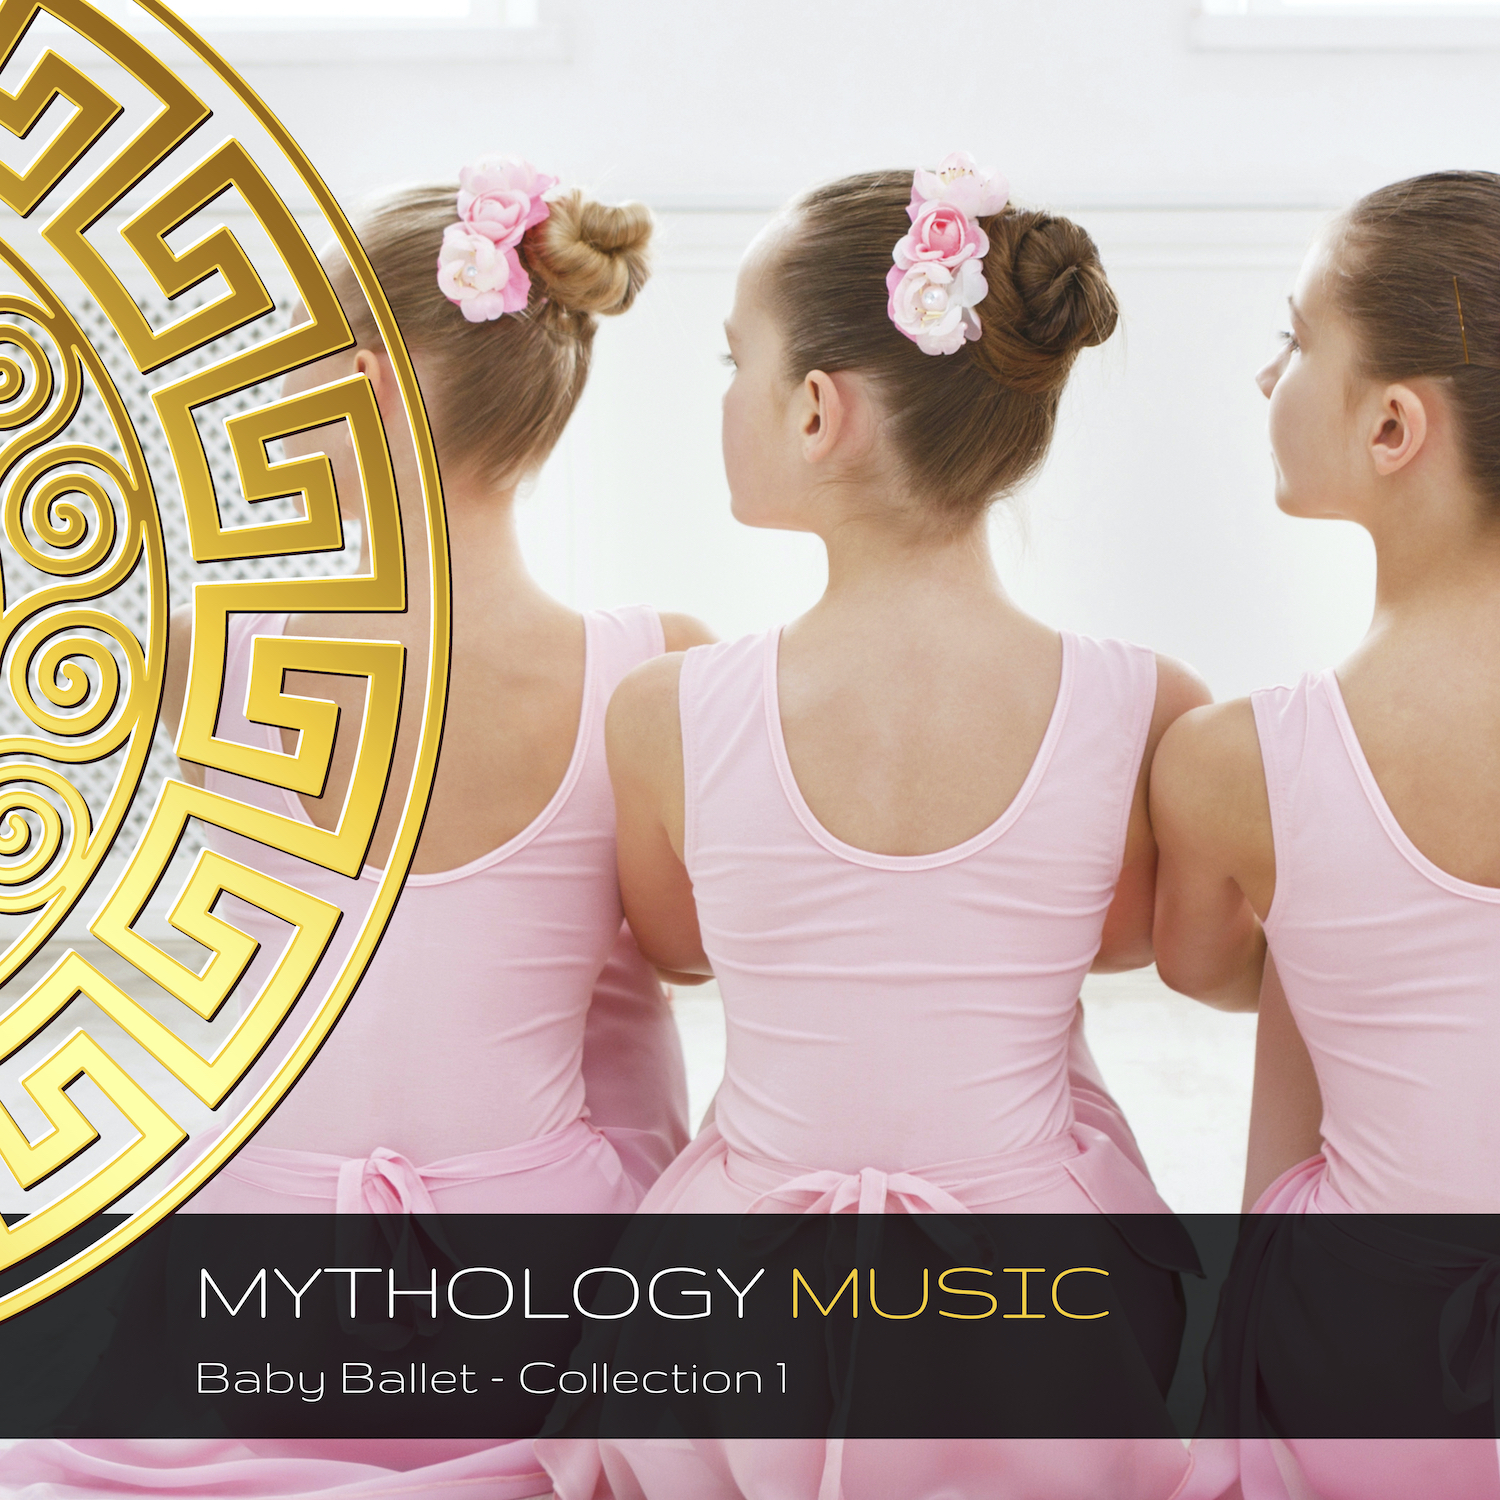 Mythology Music - Baby Ballet Collection 1